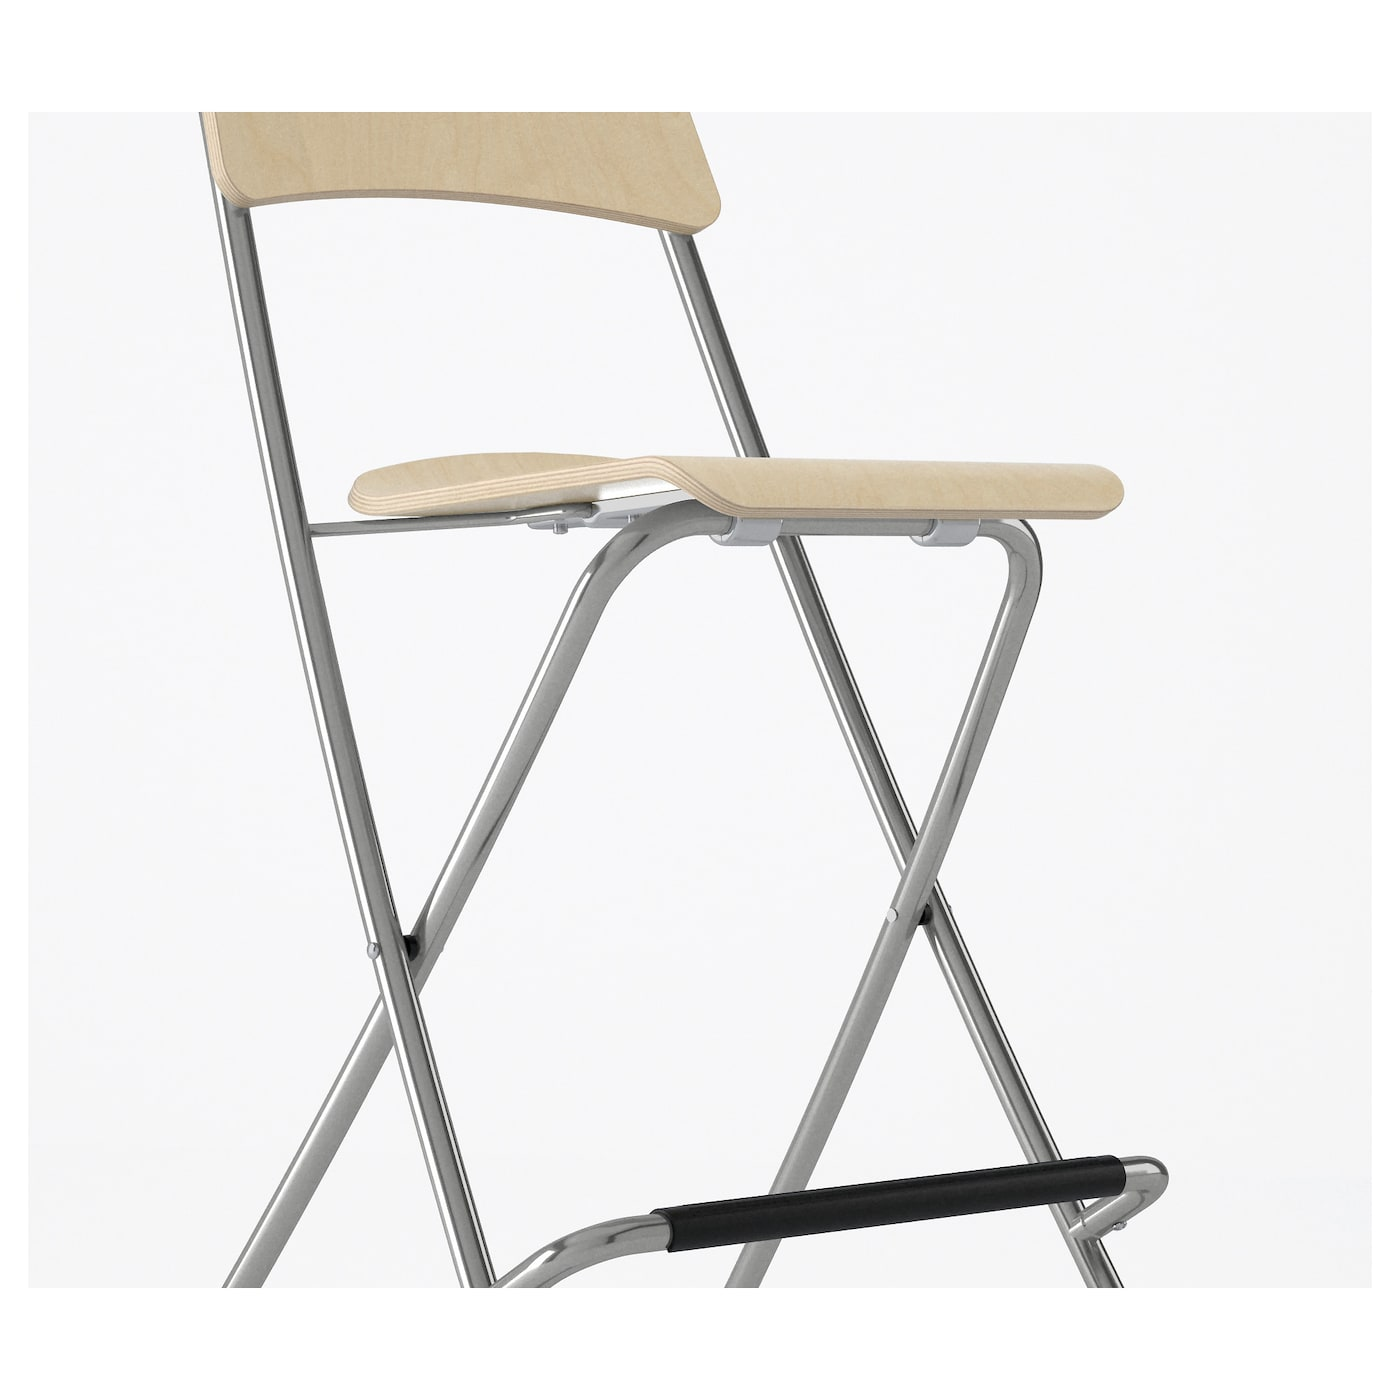 FRANKLIN Bar stool with backrest foldable Birch veneer silver